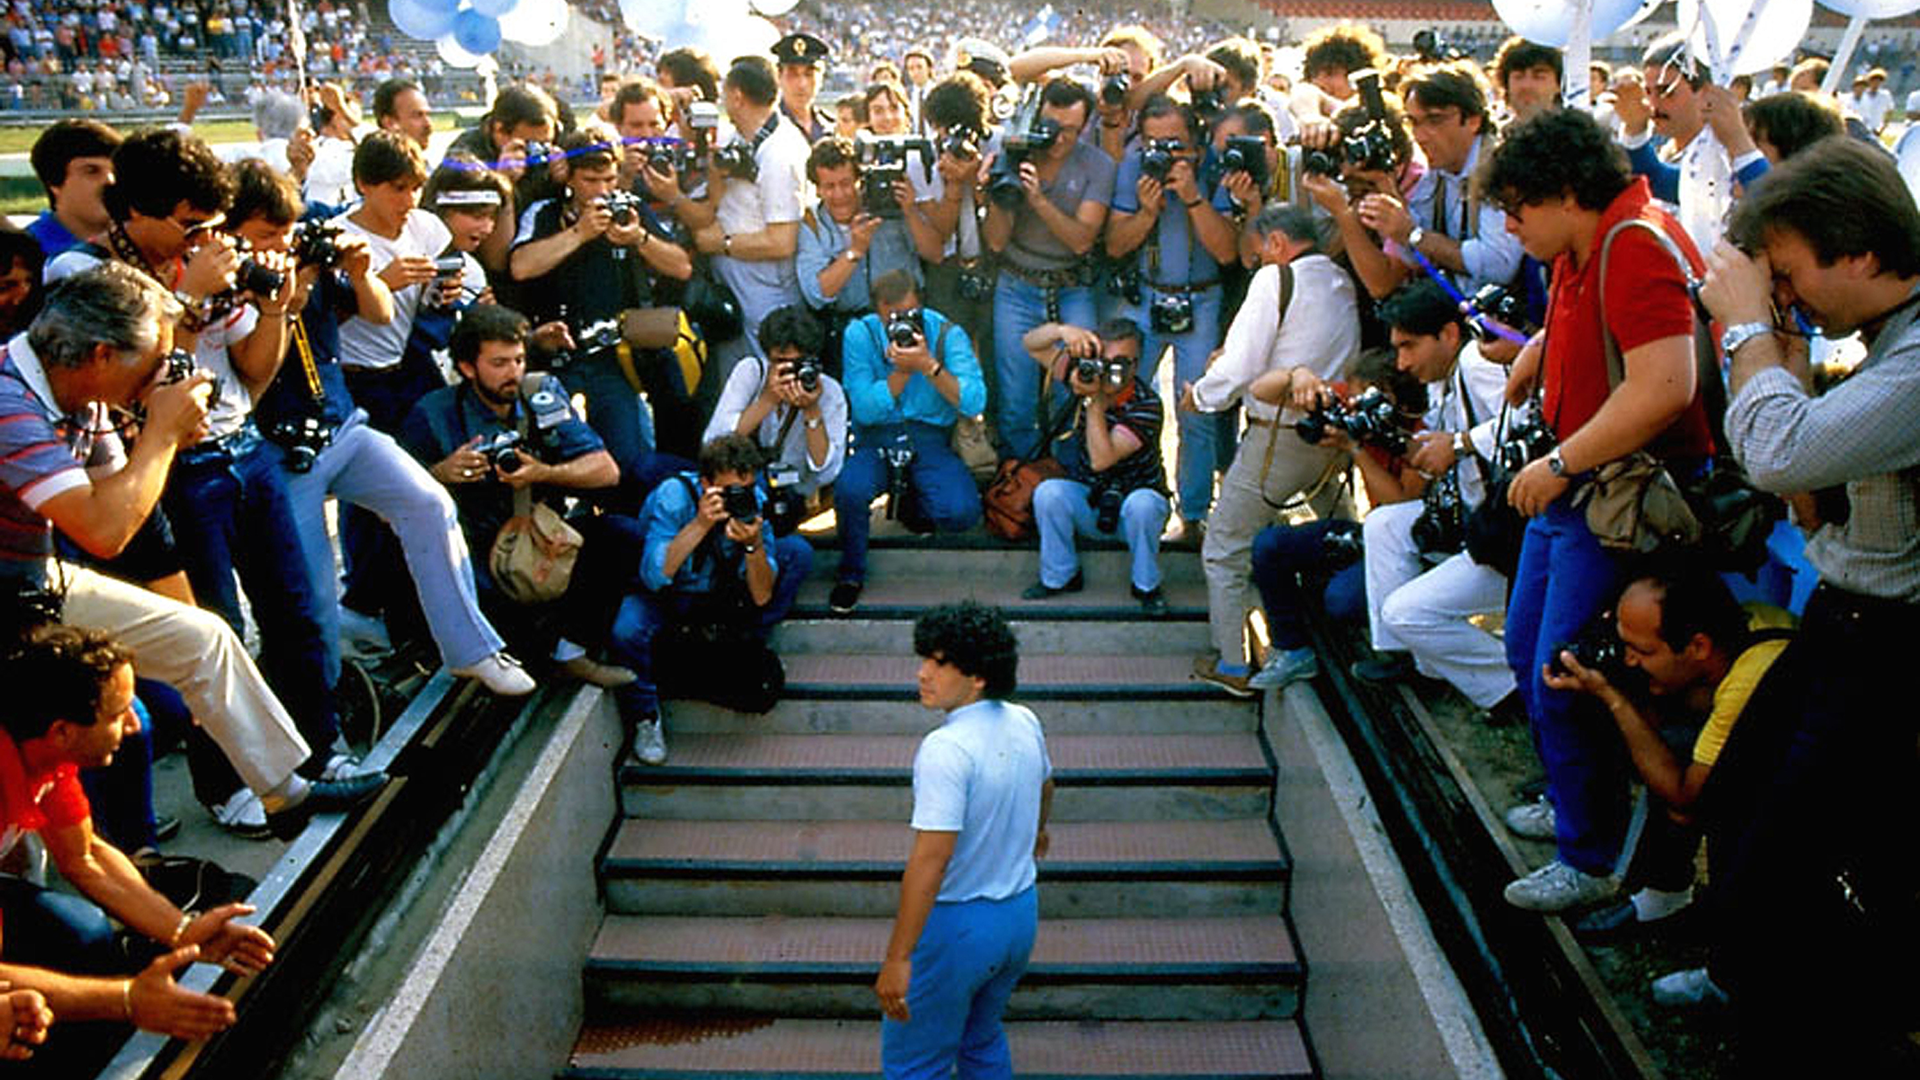 Diego Maradona documentary: Release date, description all you need to know